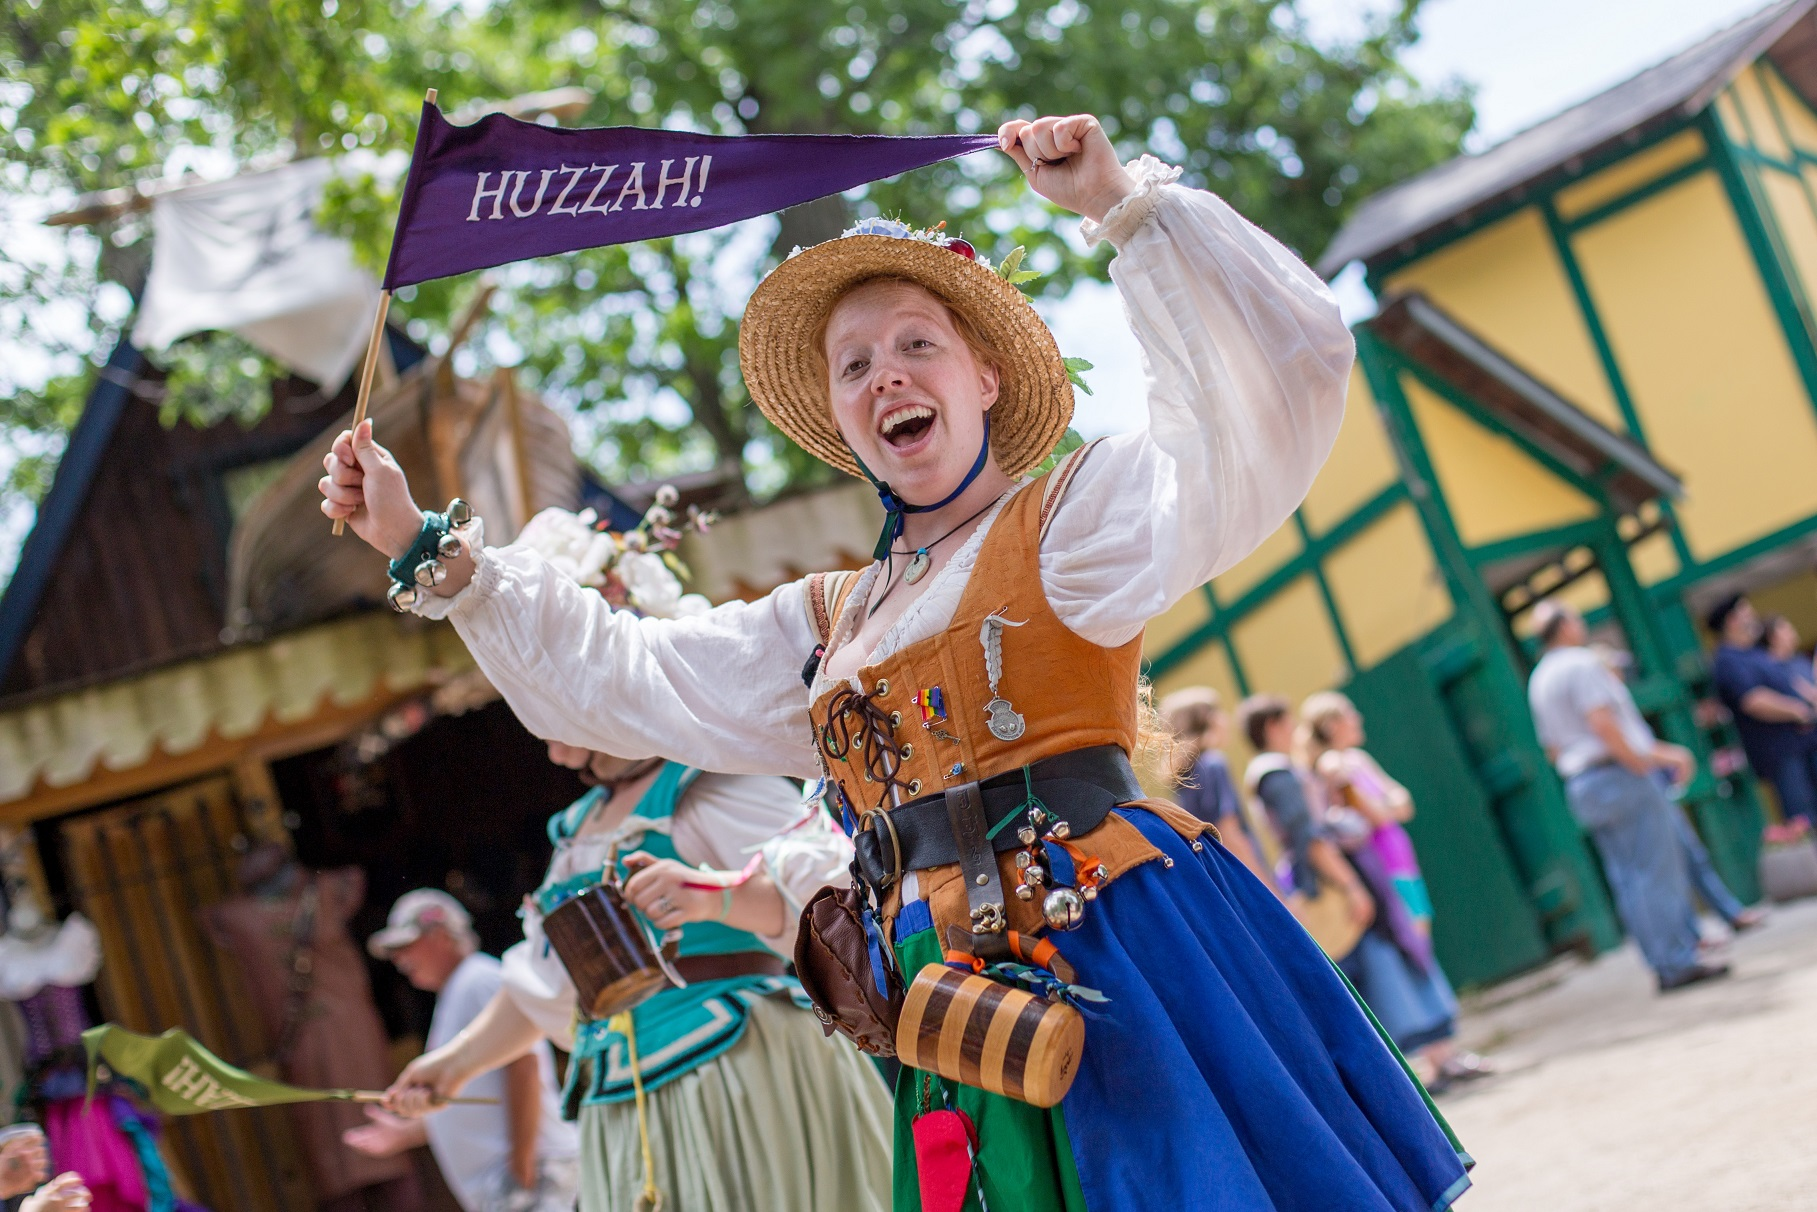 Renaissance Fairs: Press Releases, Press Passes